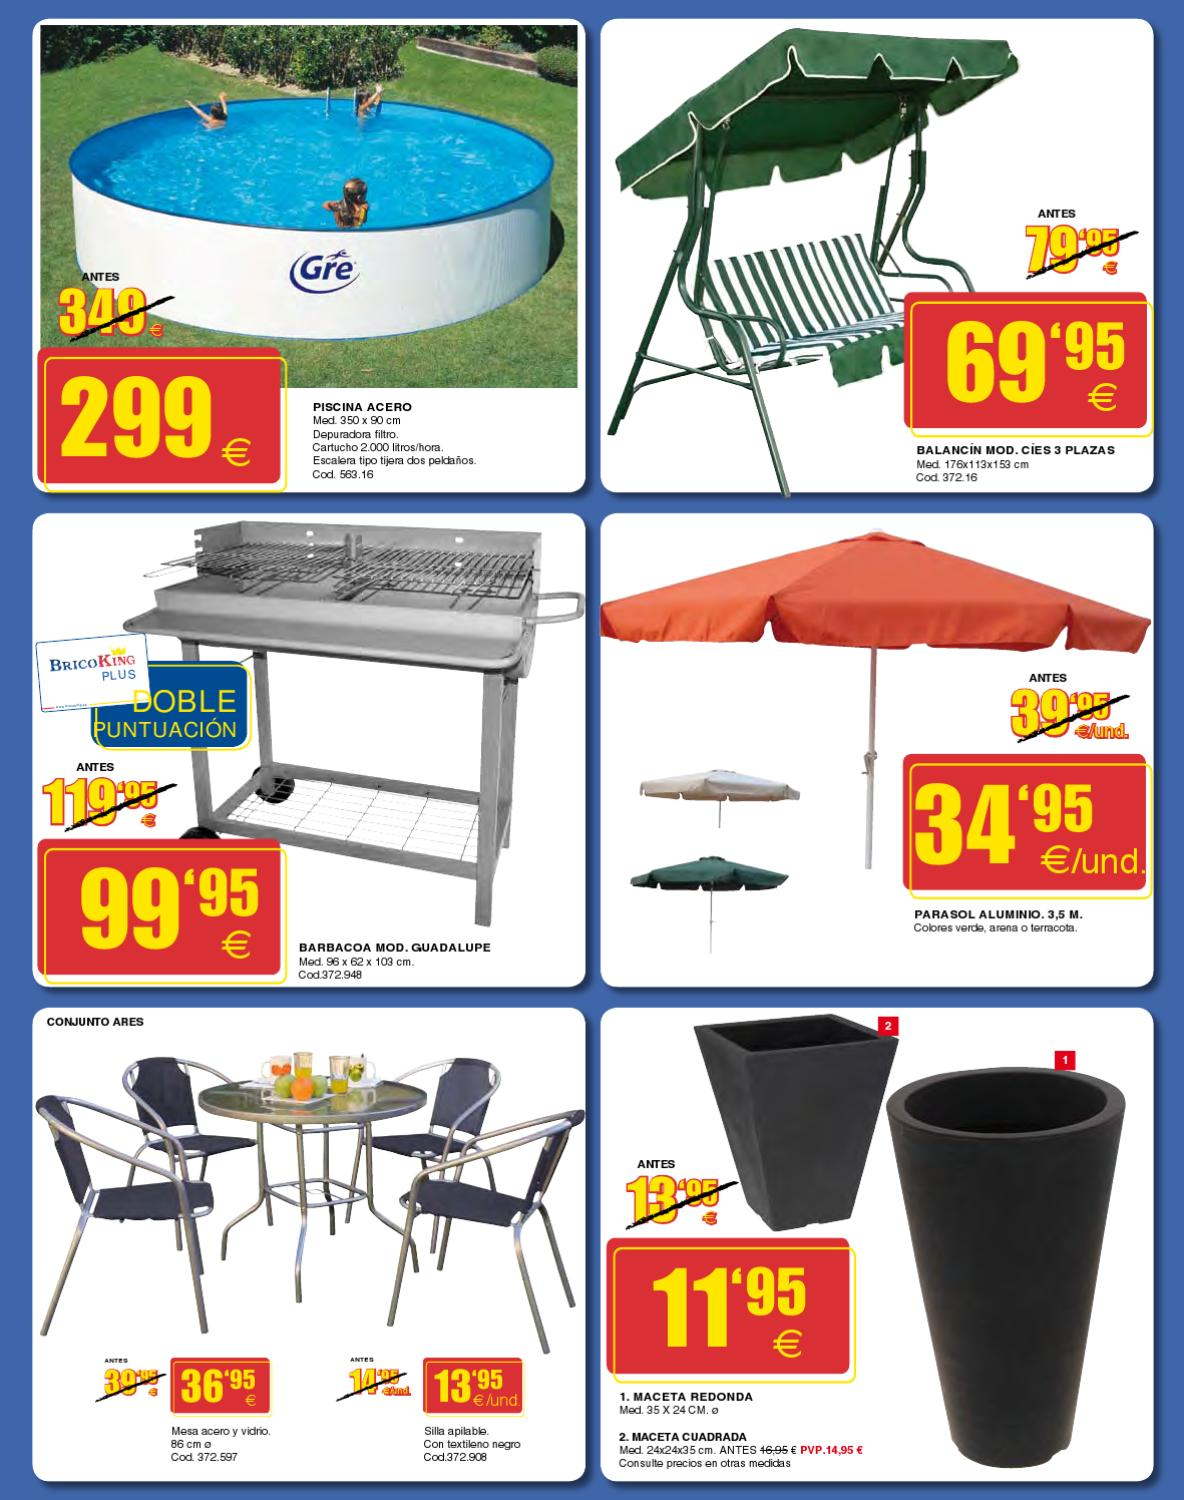 Bricoking junio 2012 barabacoas pergolas y muebles de for Piscinas bricoking